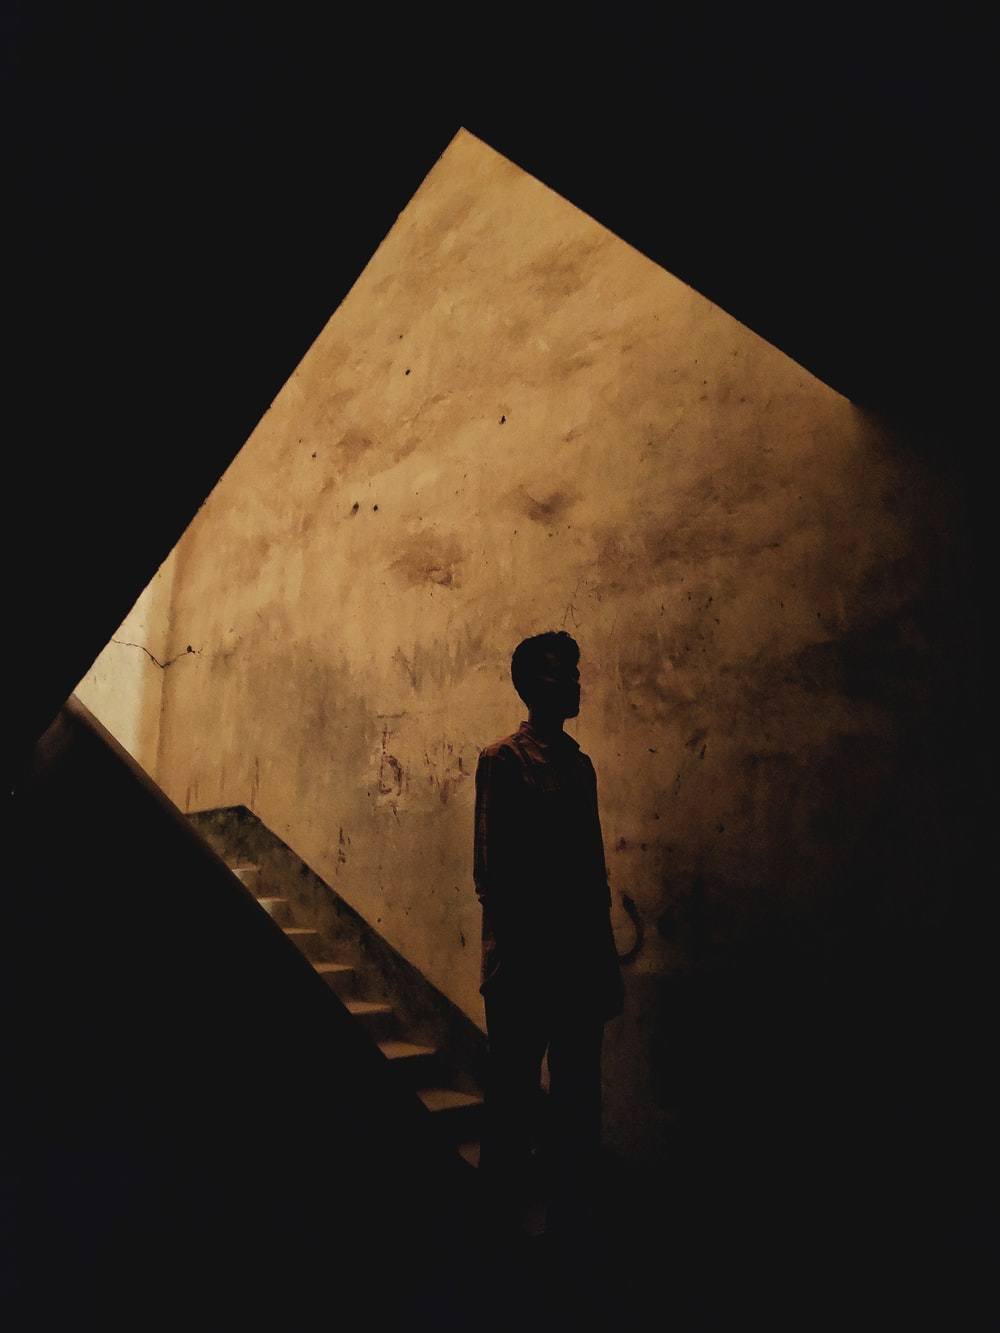 silhouette of man standing on stairs